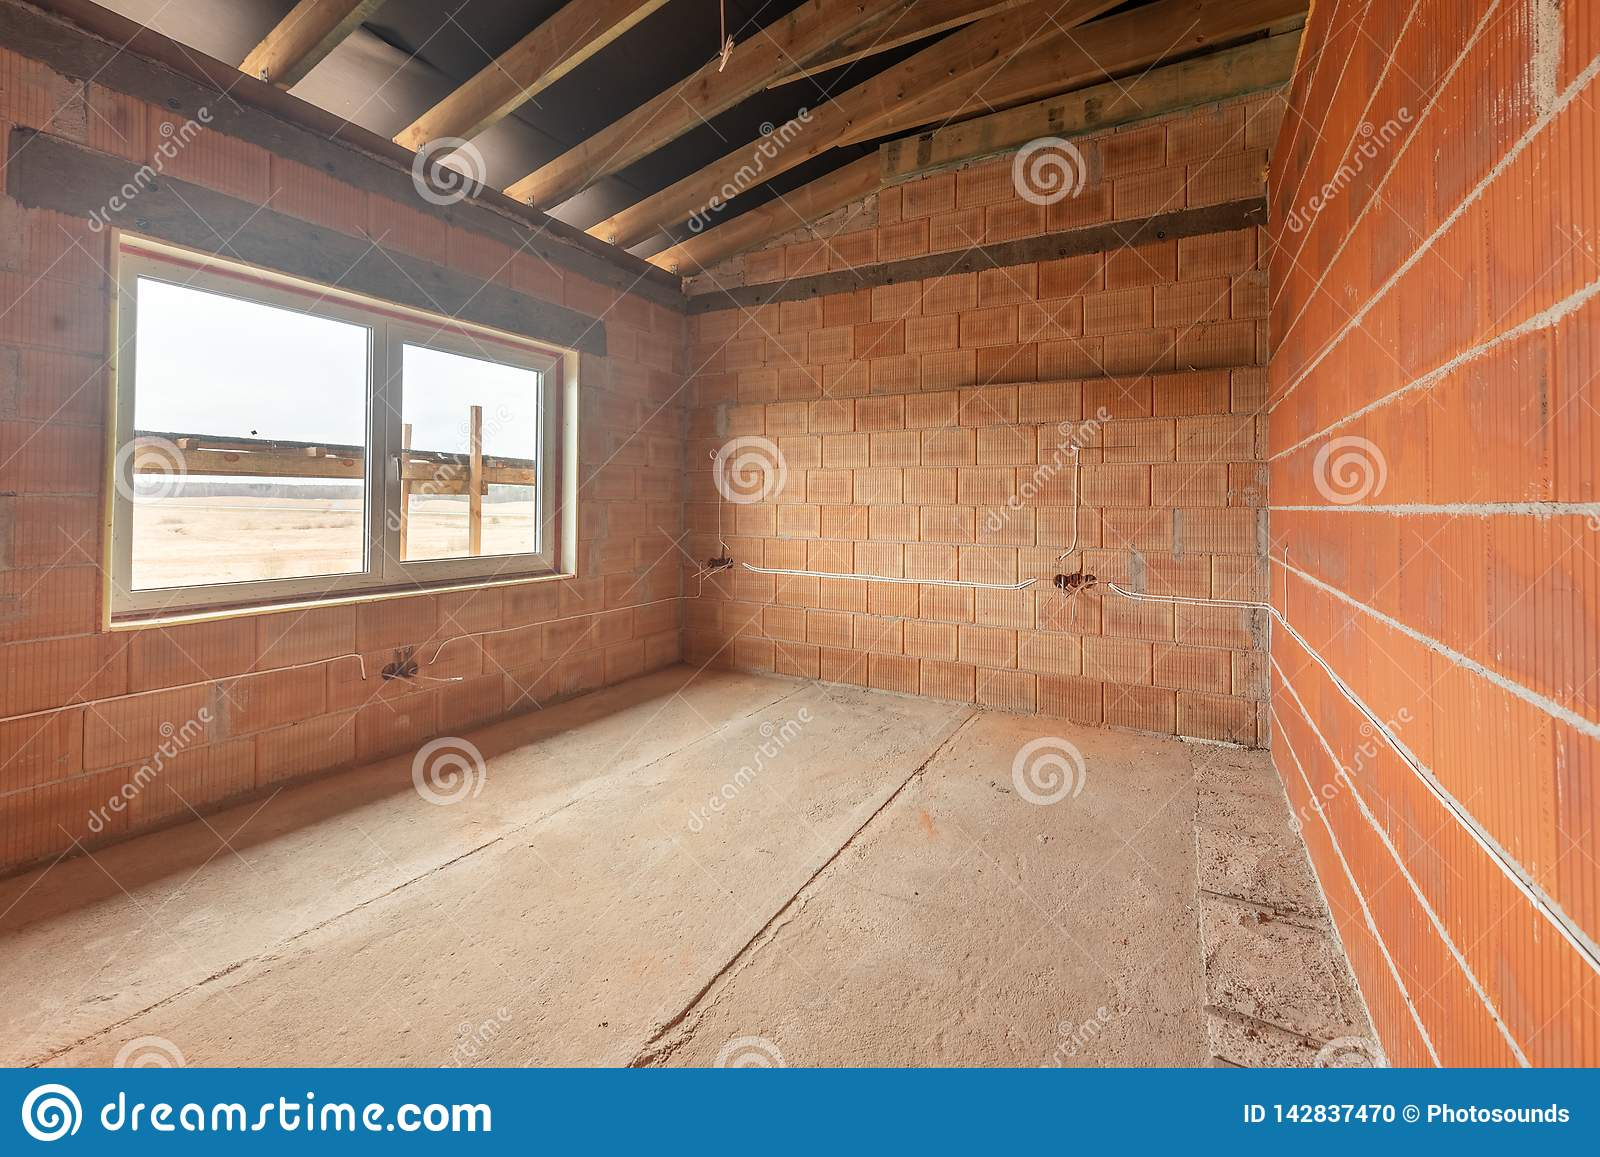 A New Home Under Construction Stock Photo - Image of frame ... Home Wiring Construction on